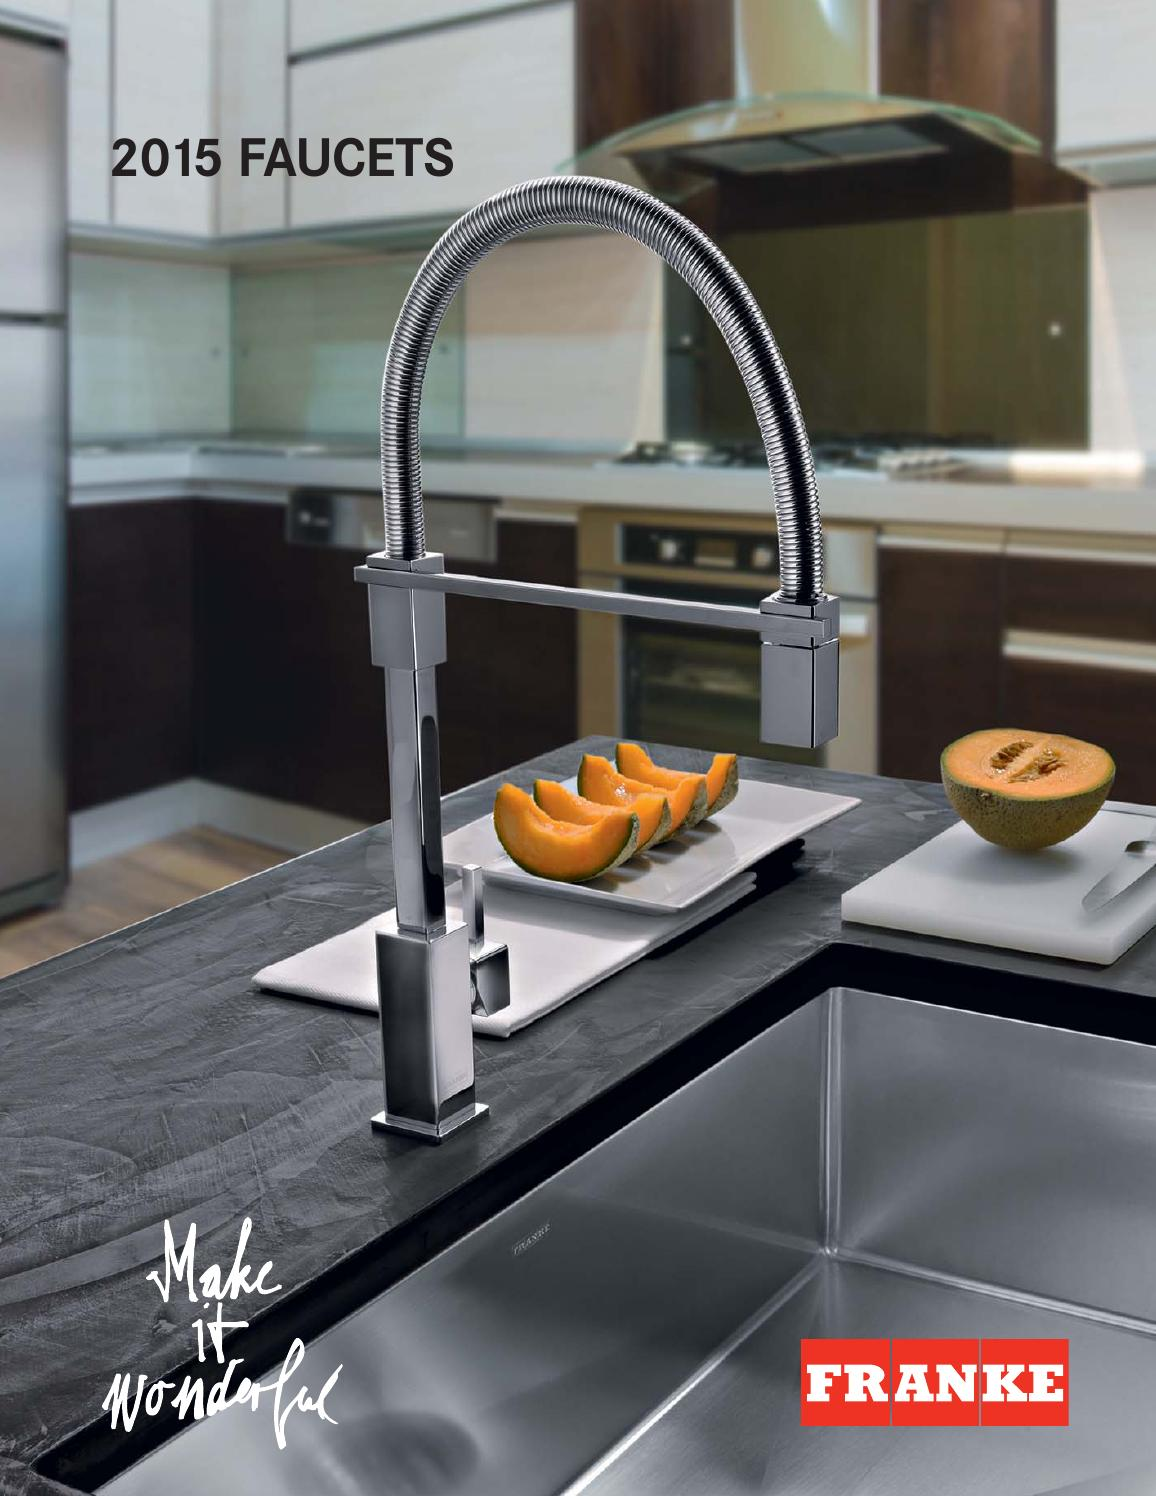 franke faucets catalog 2015 by franke kitchen systems. Black Bedroom Furniture Sets. Home Design Ideas